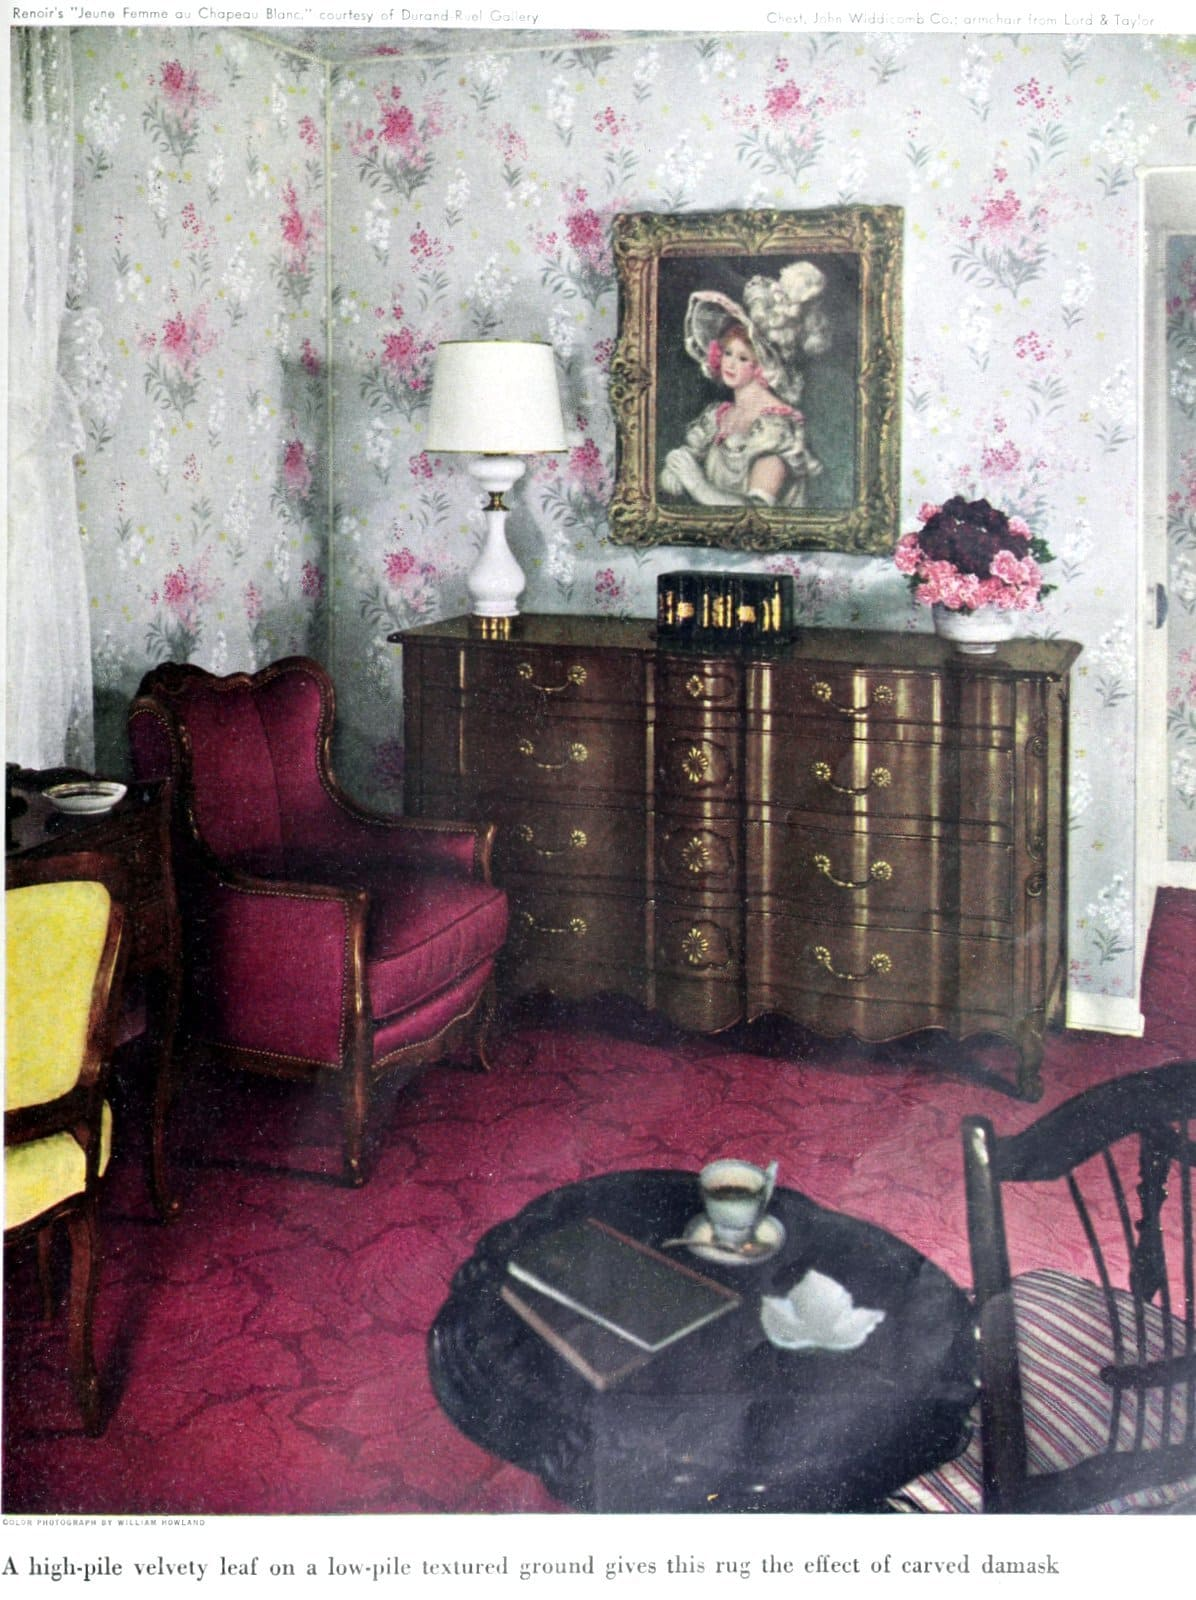 Burgundy patterned wall-to-wall carpeting (1949)